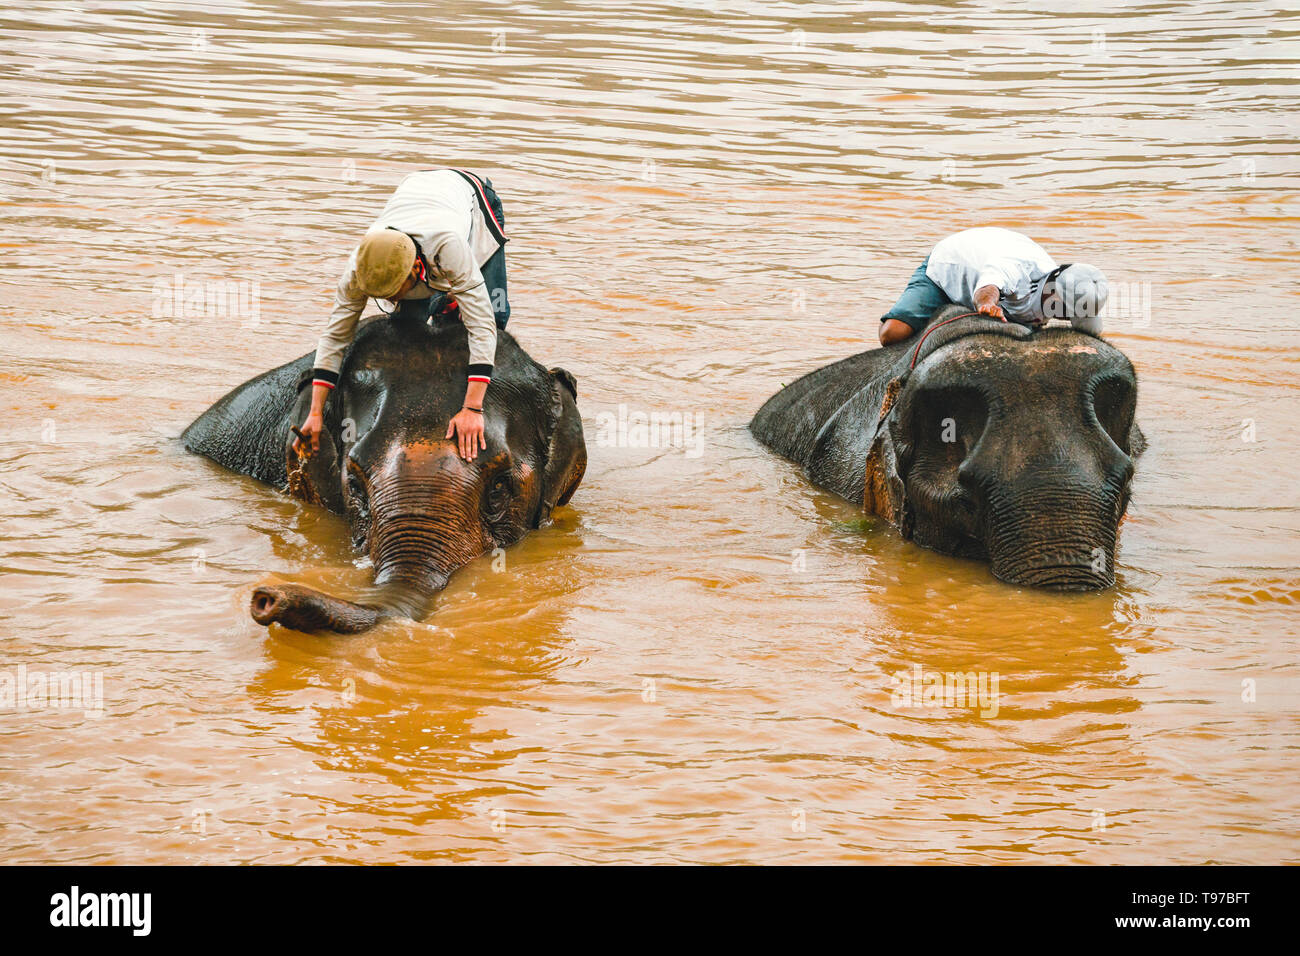 Laos. Luang Prabang - 15 January 2019: Elephant drivers wash, bathe their animals in the Mekong river standing on an elephant. Stock Photo